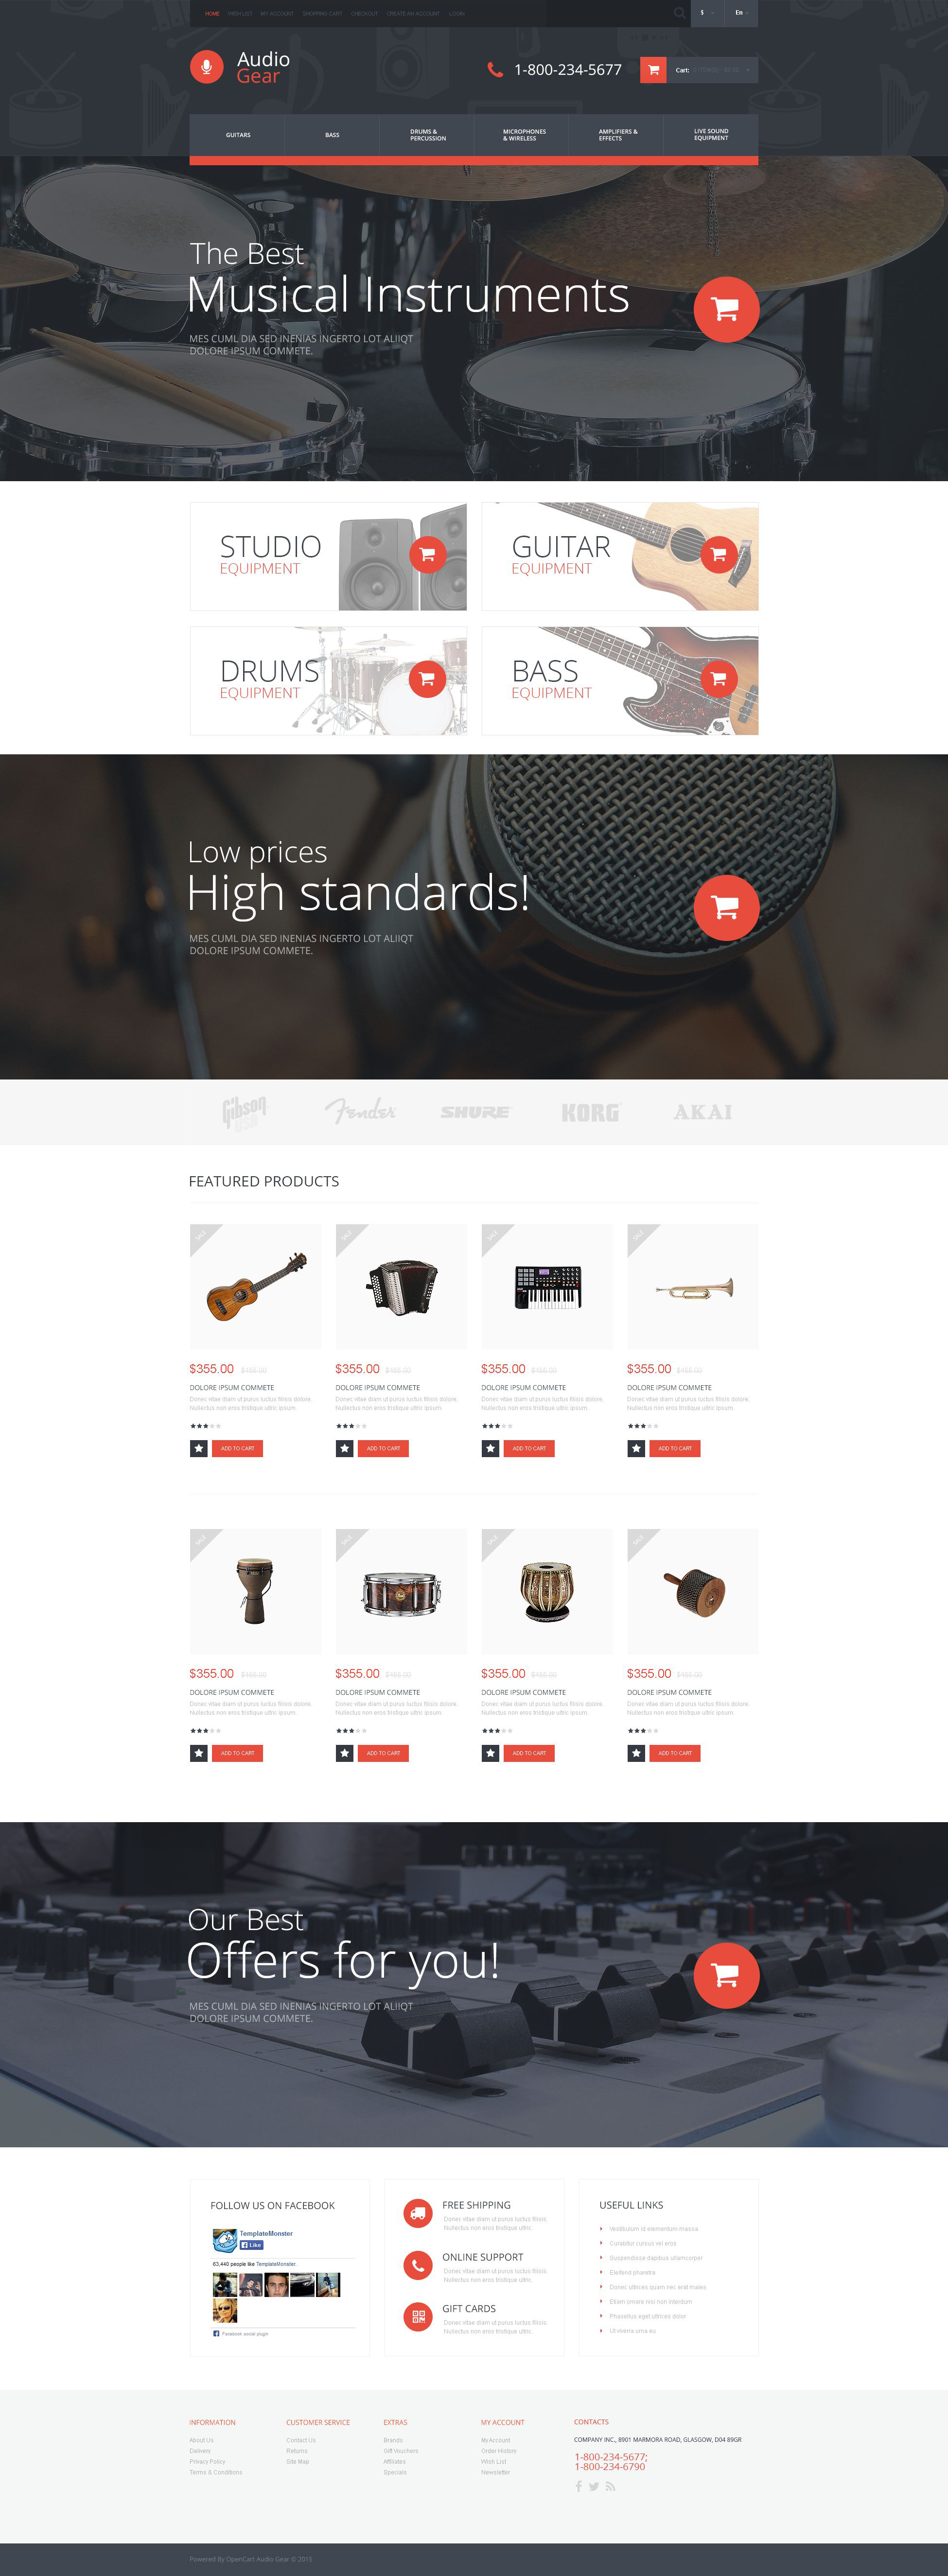 The Audio Gear Online Store OpenCart Design 53661, one of the best OpenCart templates of its kind (electronics, most popular), also known as Audio Gear online store OpenCart template, shop OpenCart template, shopping cart OpenCart template, virtuemart OpenCart template, products OpenCart template, music OpenCart template, pioneer OpenCart template, player OpenCart template, cd OpenCart template, dvd-rom OpenCart template, sd OpenCart template, card OpenCart template, usb OpenCart template, dj OpenCart template, mp3 OpenCart template, electronics and related with Audio Gear online store, shop, shopping cart, virtuemart, products, music, pioneer, player, cd, dvd-rom, sd, card, usb, dj, mp3, electronics, etc.